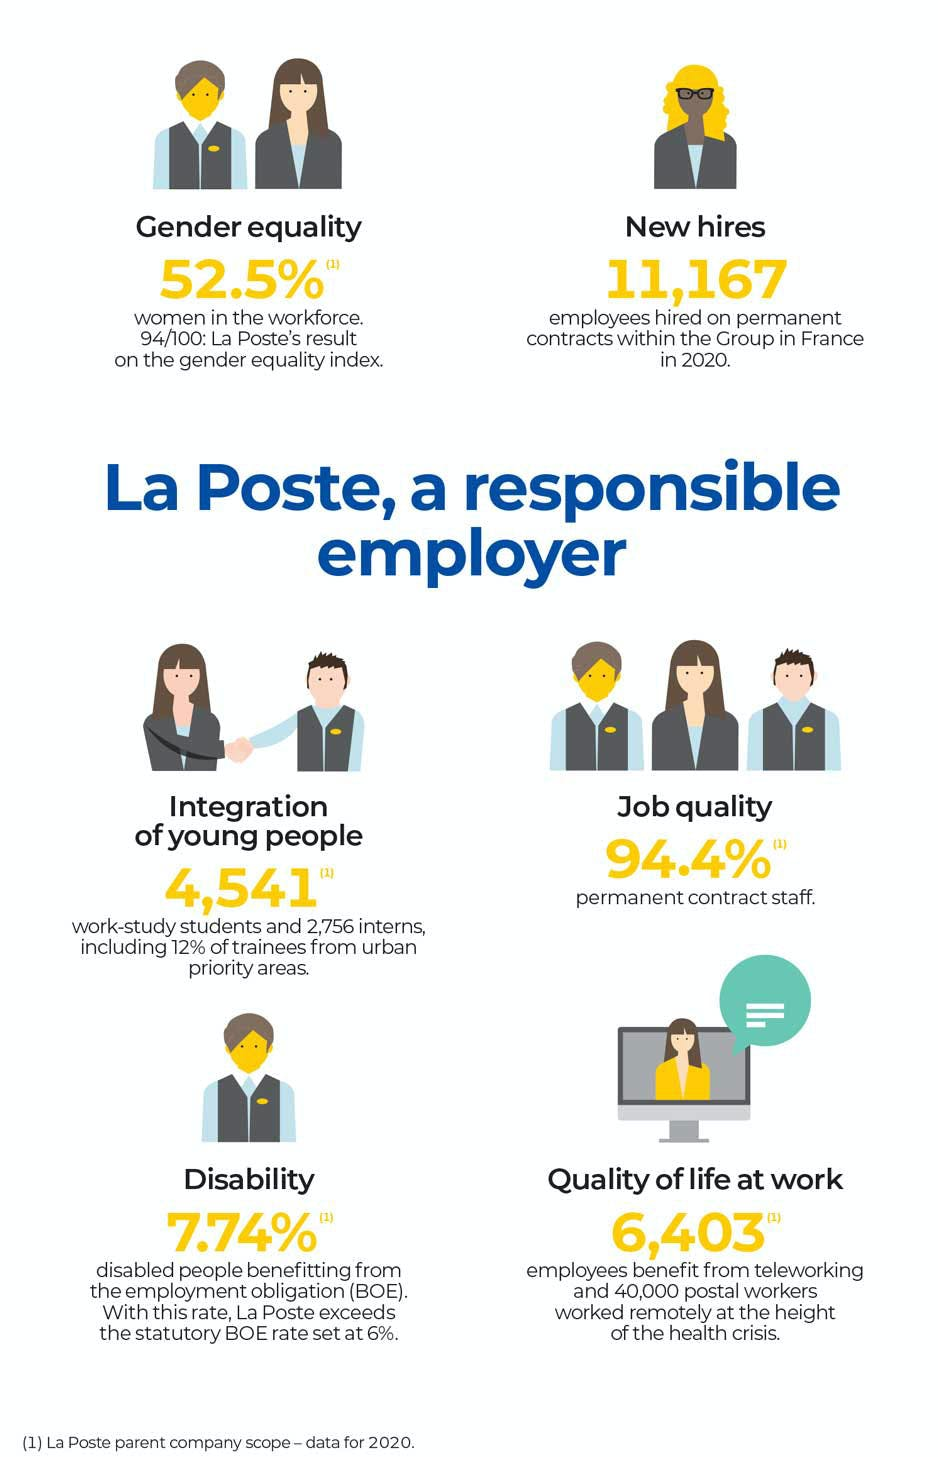 La Poste, an employer committed to social responsibility